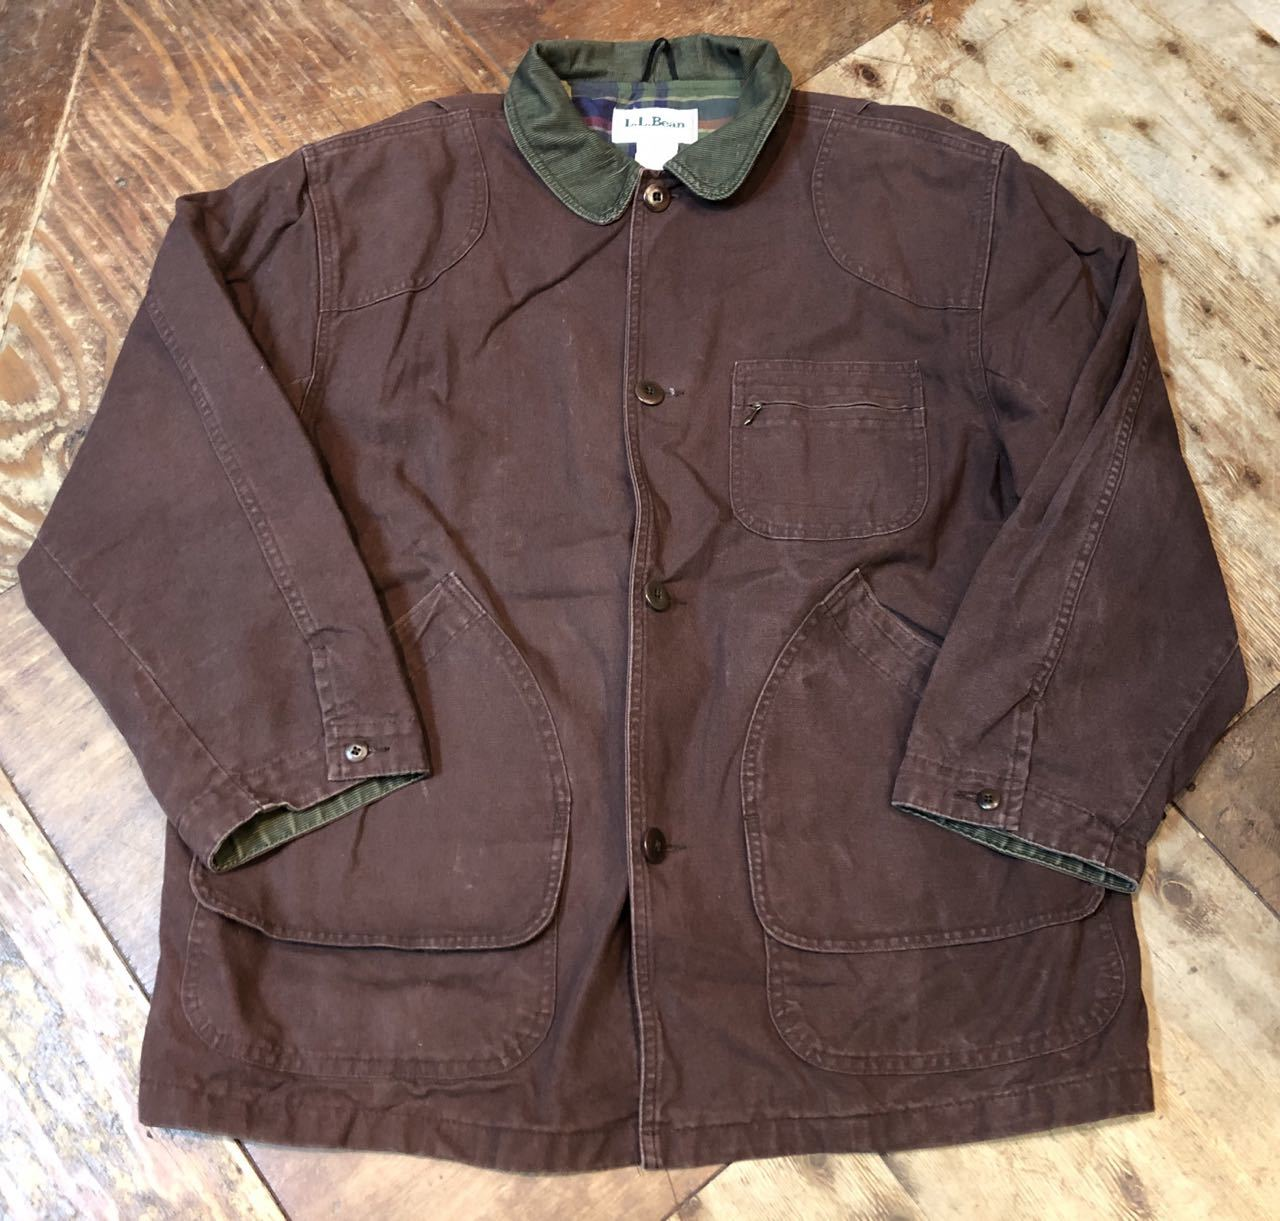 11月9日(土)入荷!L.L BEAN MADE IN U.S.A  HUNTING JACKET !_c0144020_13423202.jpg